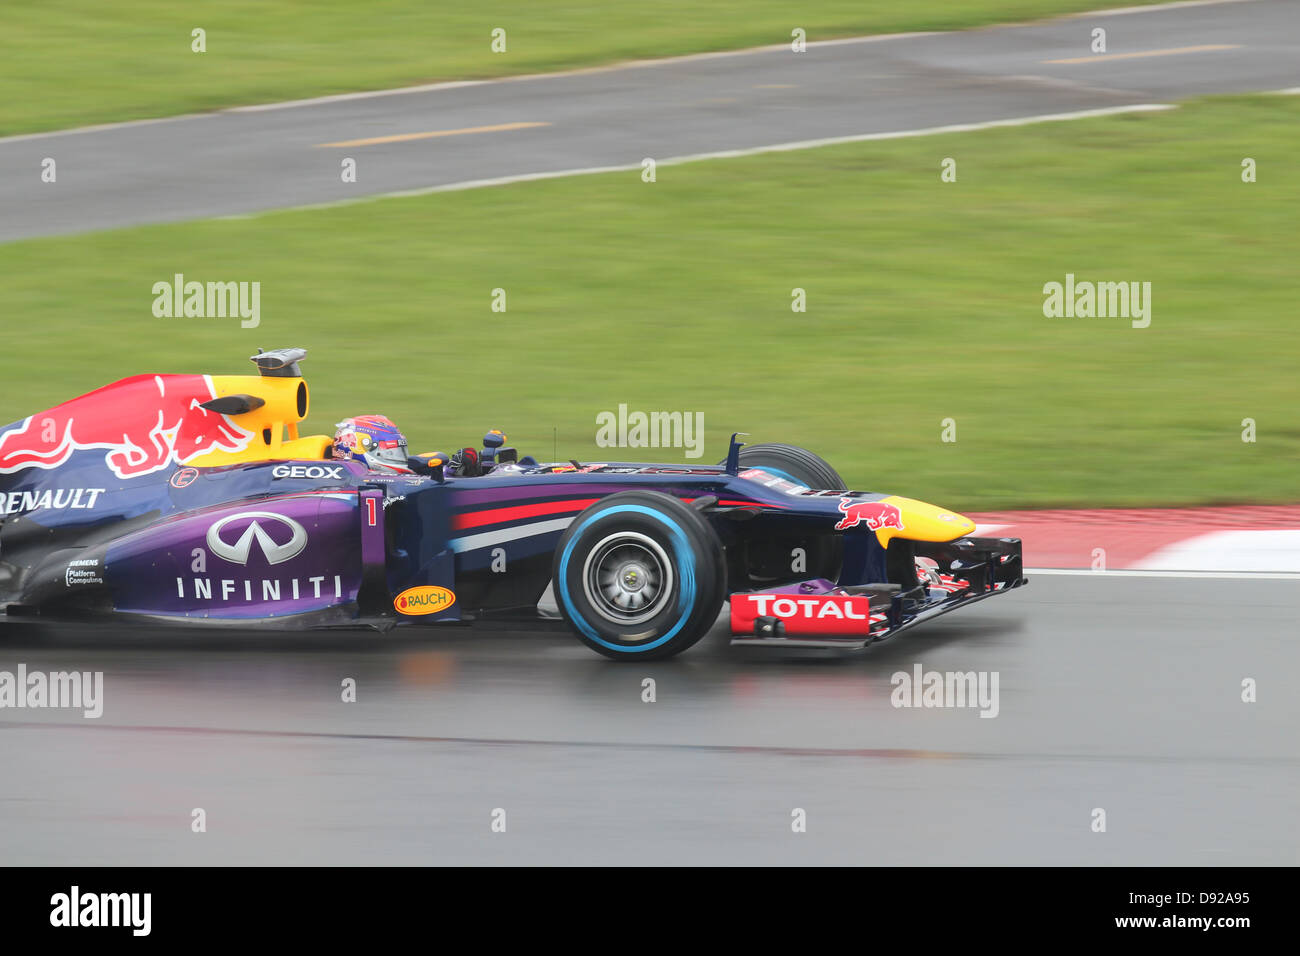 F1 team Red Bull and race driver, Vettel Stock Photo